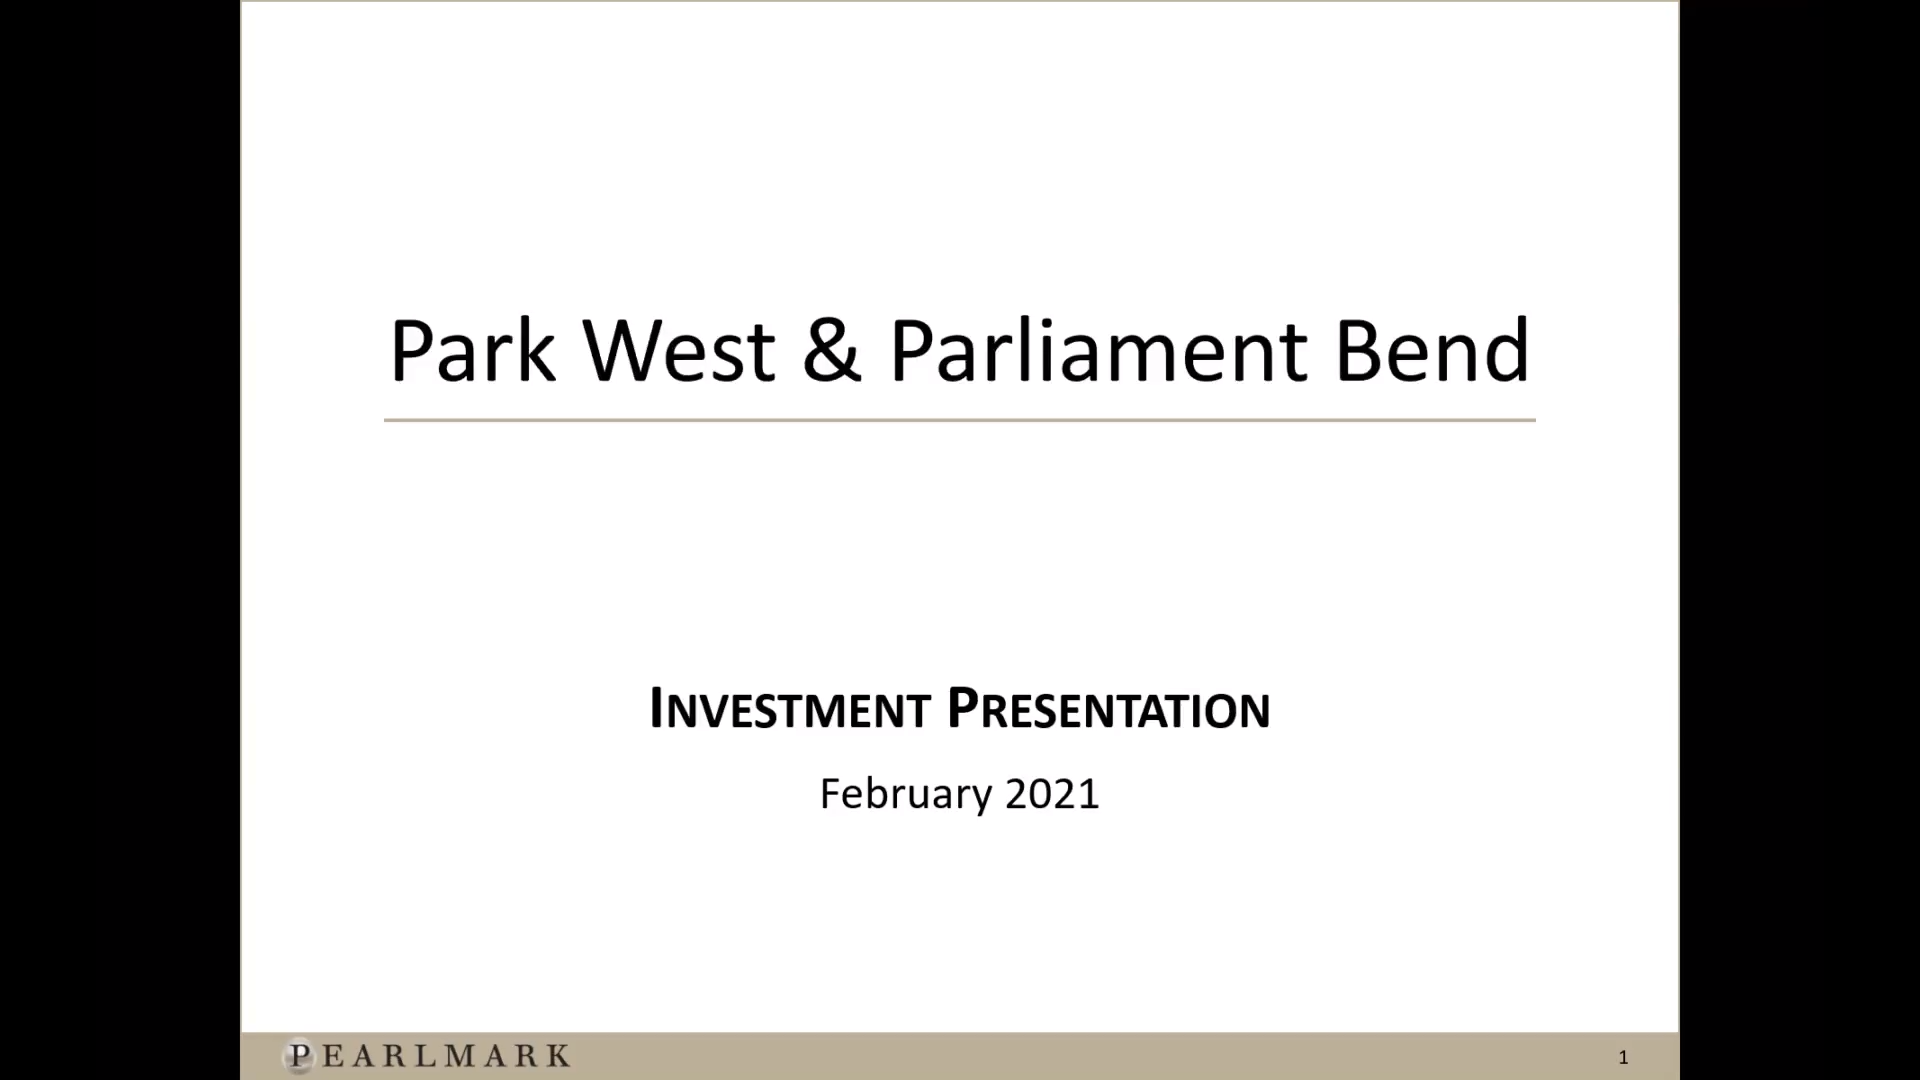 Investment Video - Park West & Parliament Bend